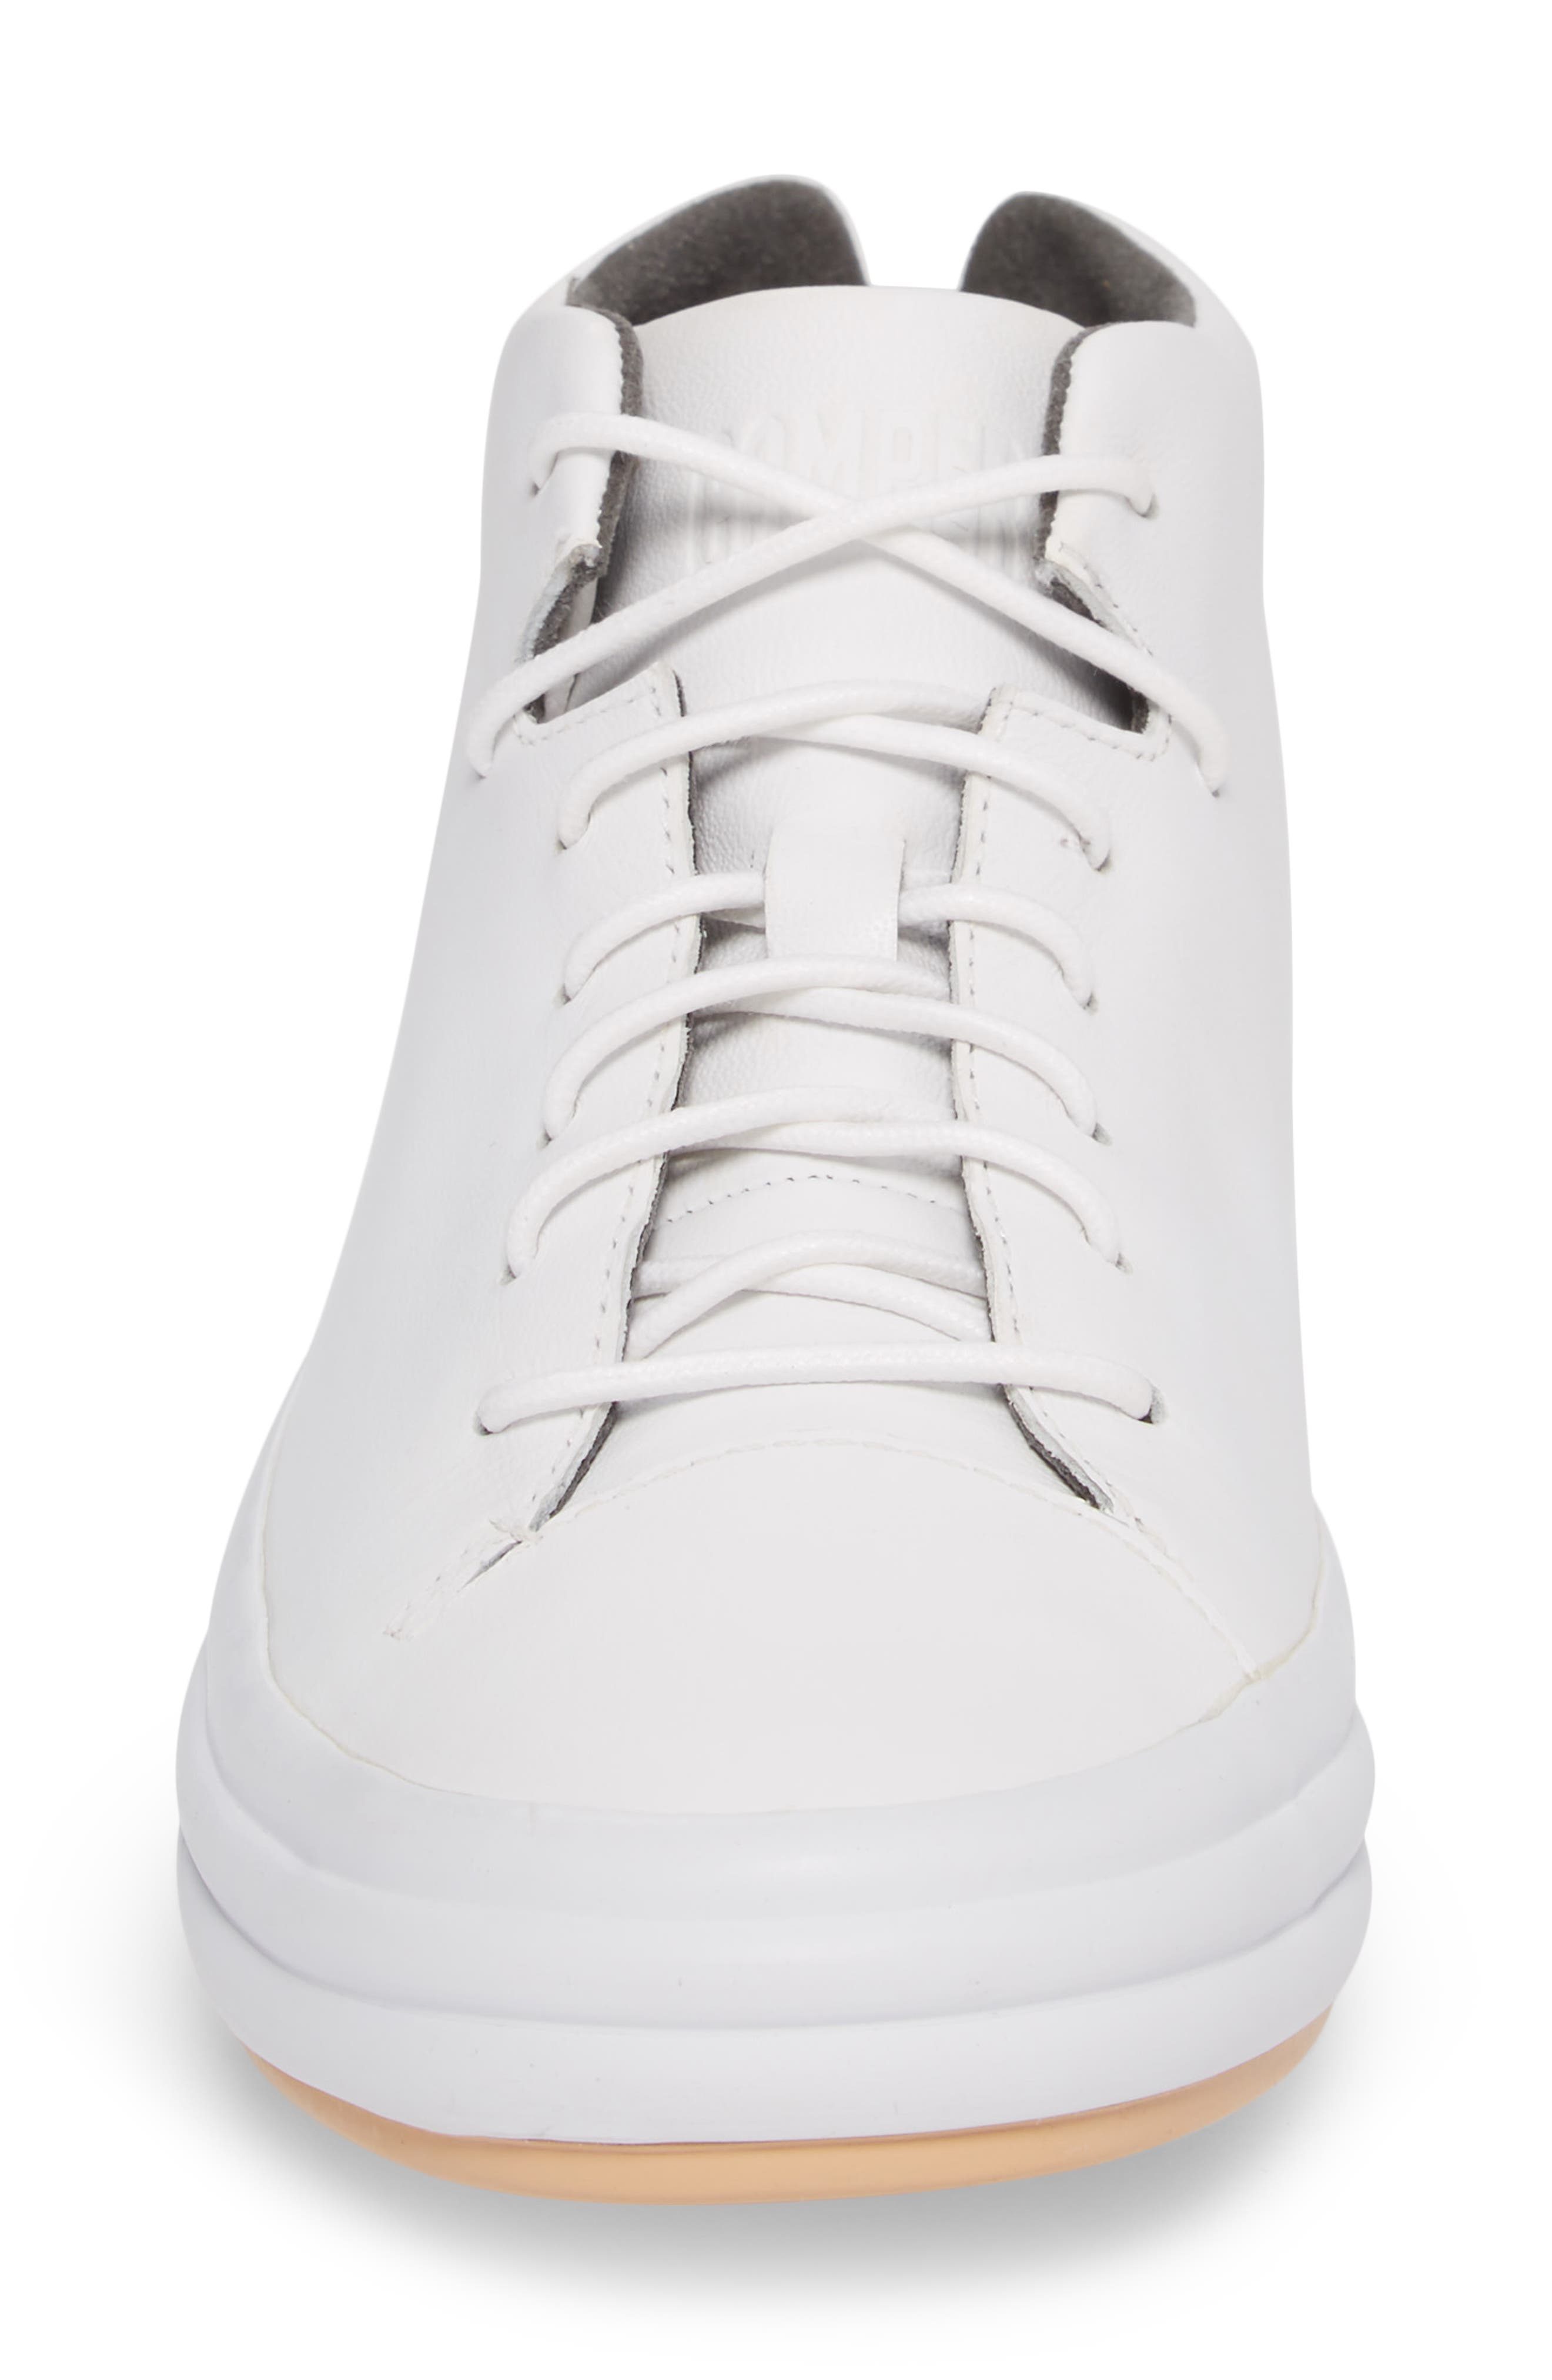 Hoops Mid Top Sneaker,                             Alternate thumbnail 4, color,                             WHITE NATURAL LEATHER